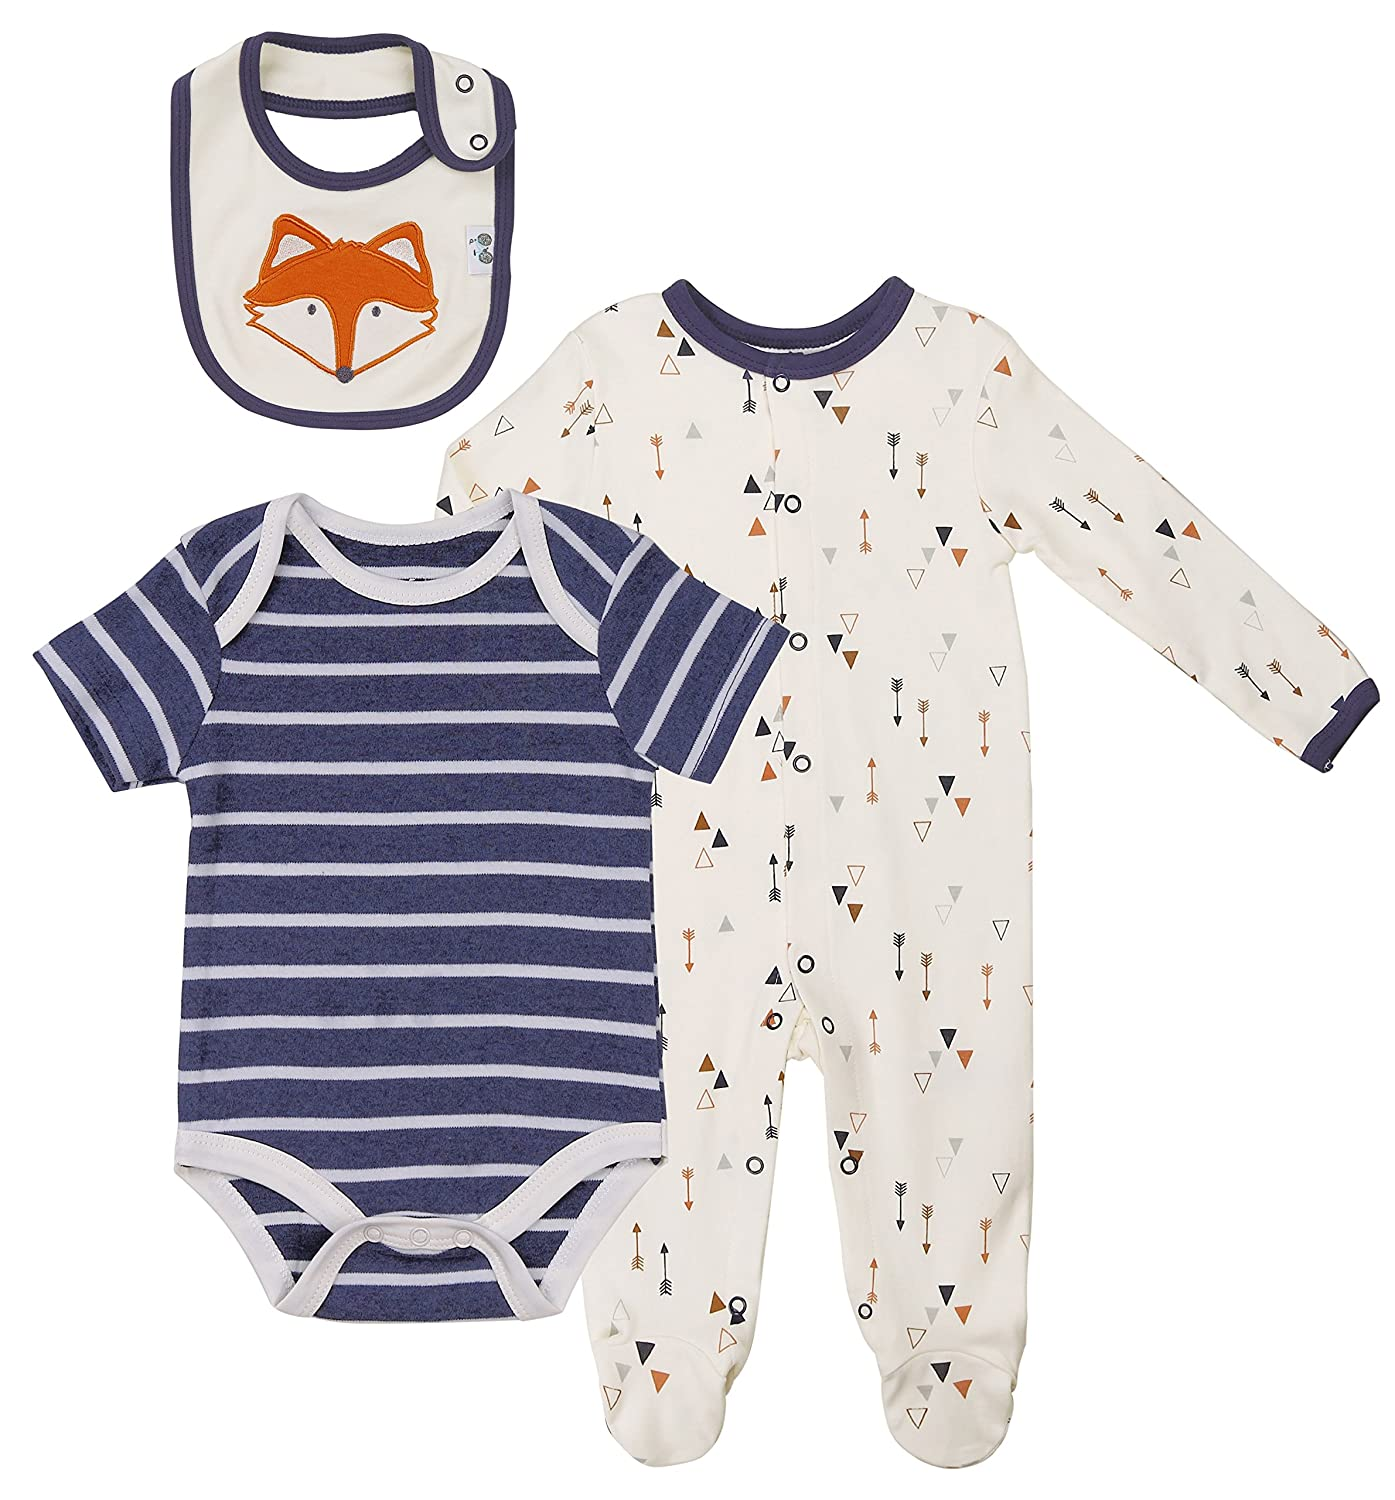 and Matching Bib Bundle Includes Footed Pajama Bodysuit Asher and Olivia Baby Boys 3-Piece Layette Set